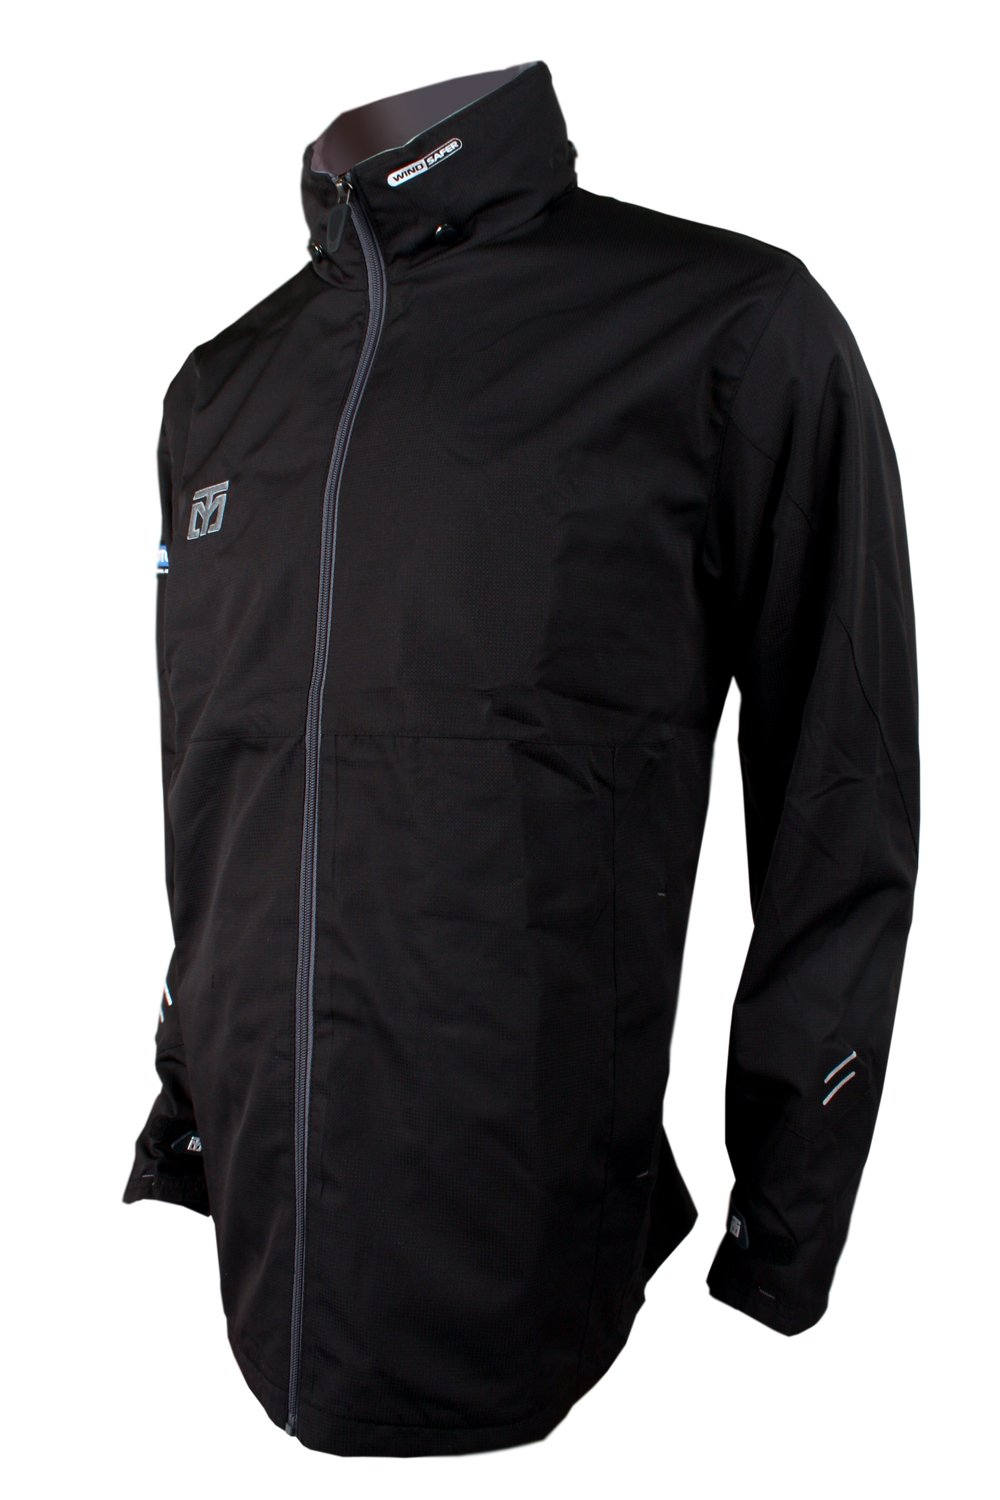 Mooto Wings Wind Breaker 4 Color Jacket Training TaeKwonDo 4.26ft to 6.88ft (Black, 160(150cm-160cm or 4.92ft-5.24ft)) by Mooto